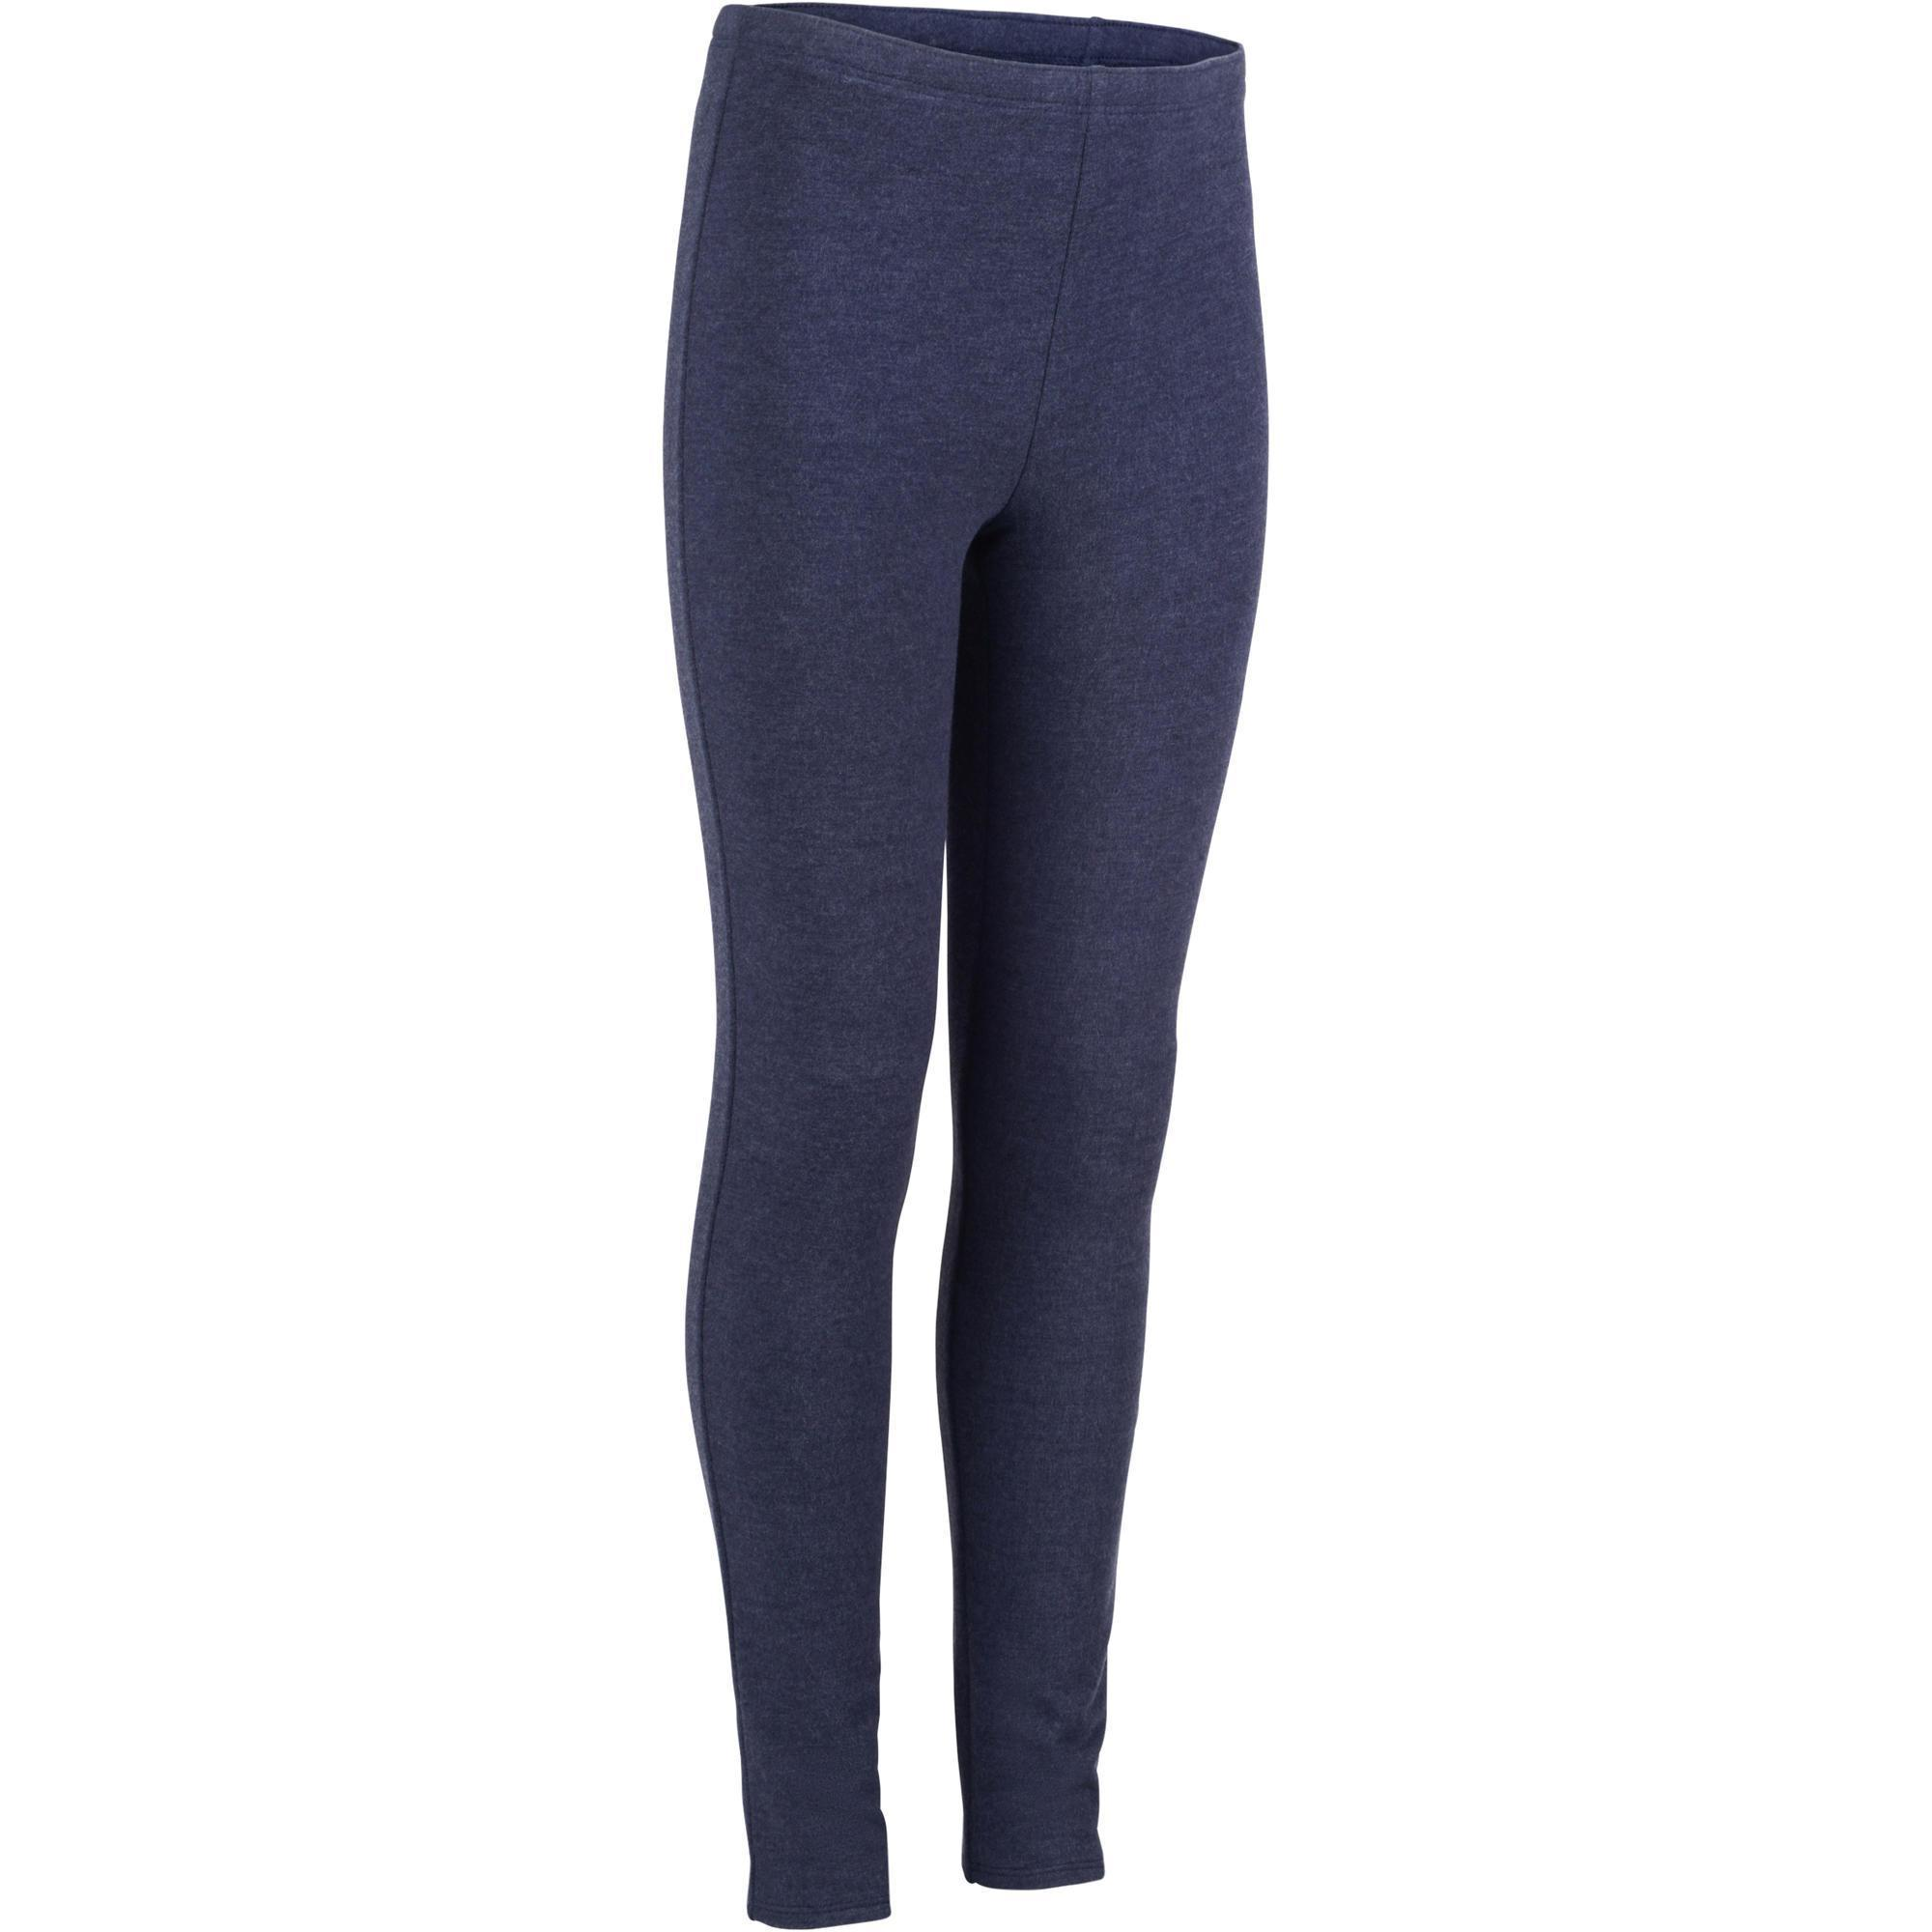 696c4f1a89b62 100 Girls' Warm Gym Leggings - Blue | Domyos by Decathlon